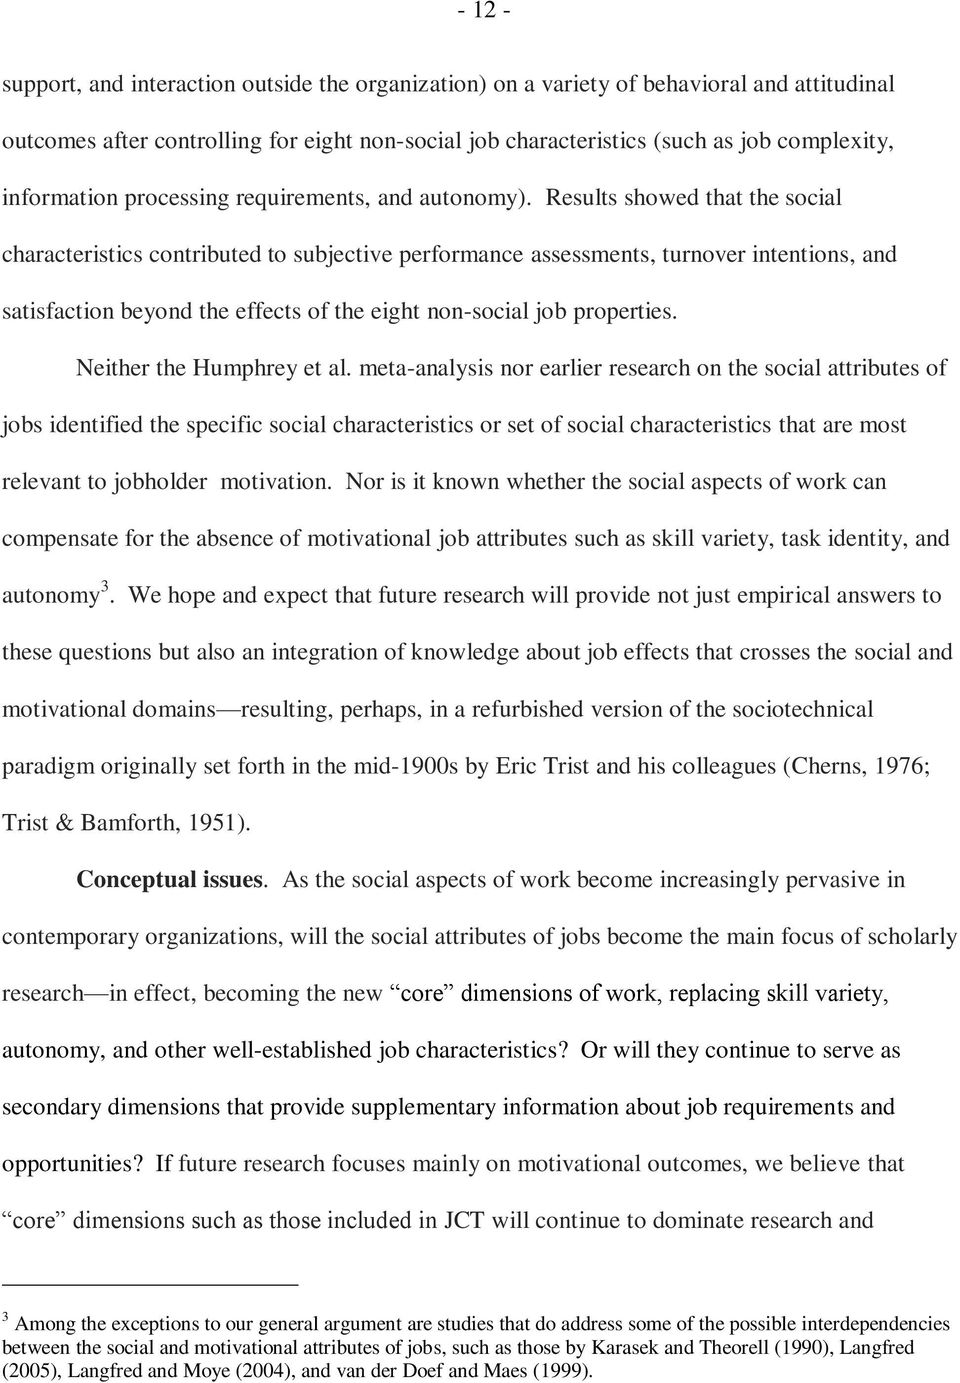 Results showed that the social characteristics contributed to subjective performance assessments, turnover intentions, and satisfaction beyond the effects of the eight non-social job properties.